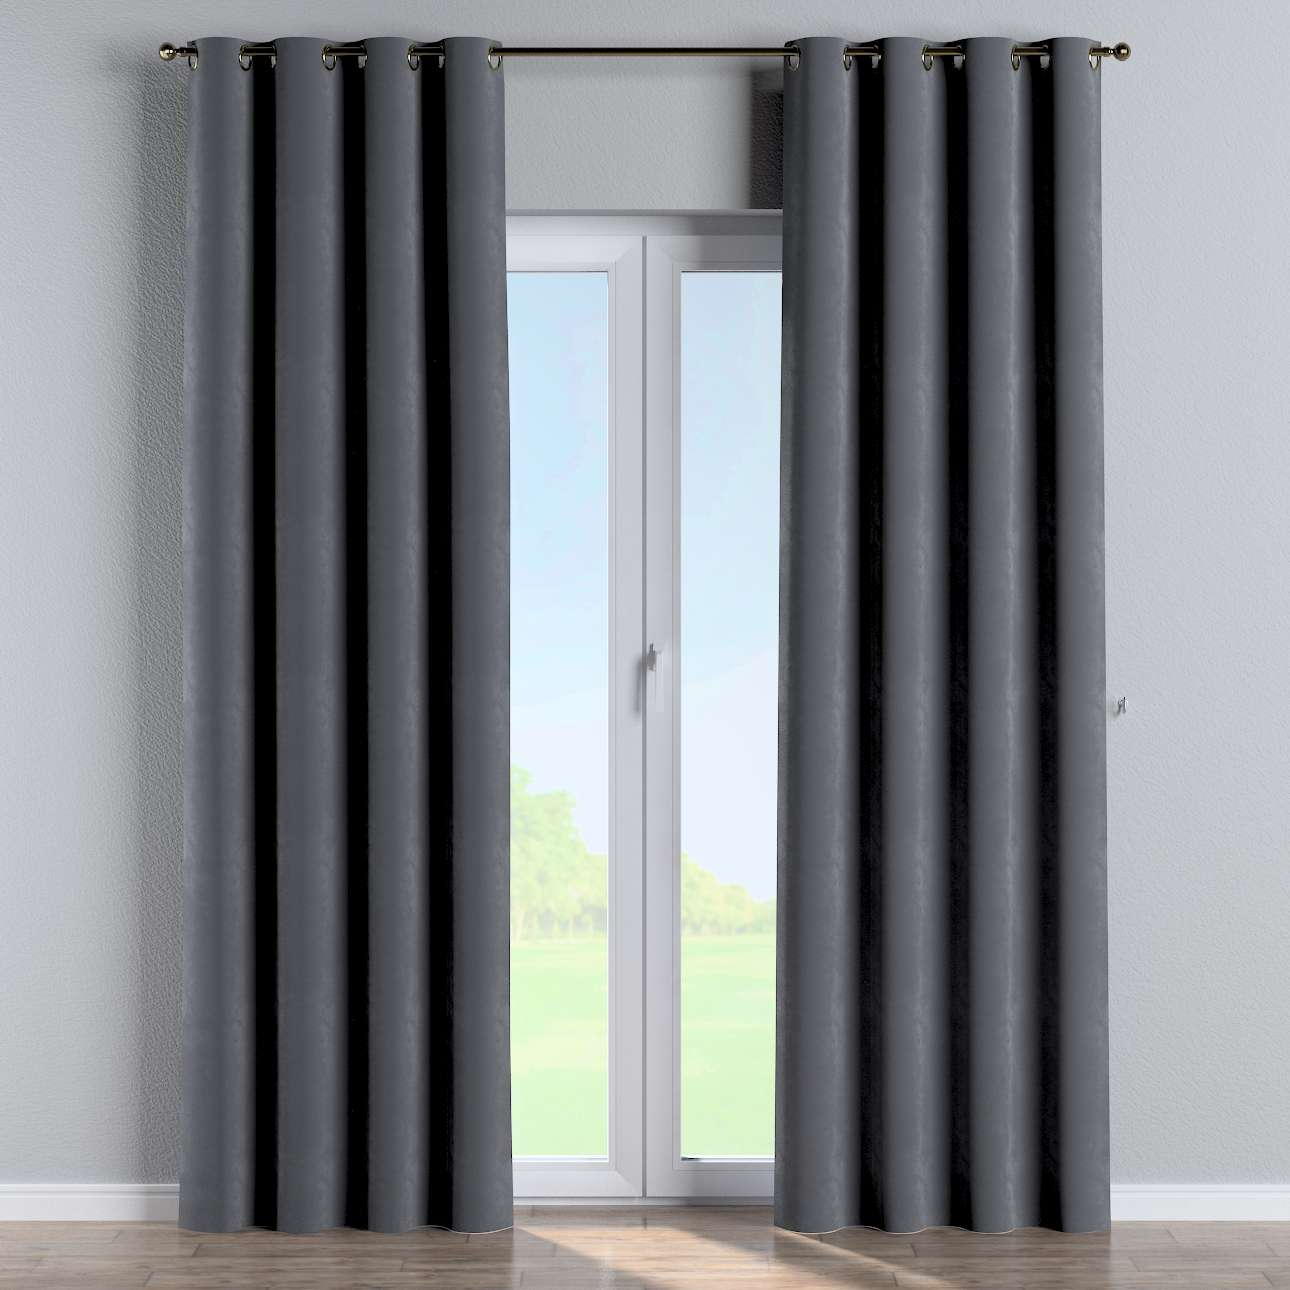 Eyelet curtains in collection Velvet, fabric: 704-12